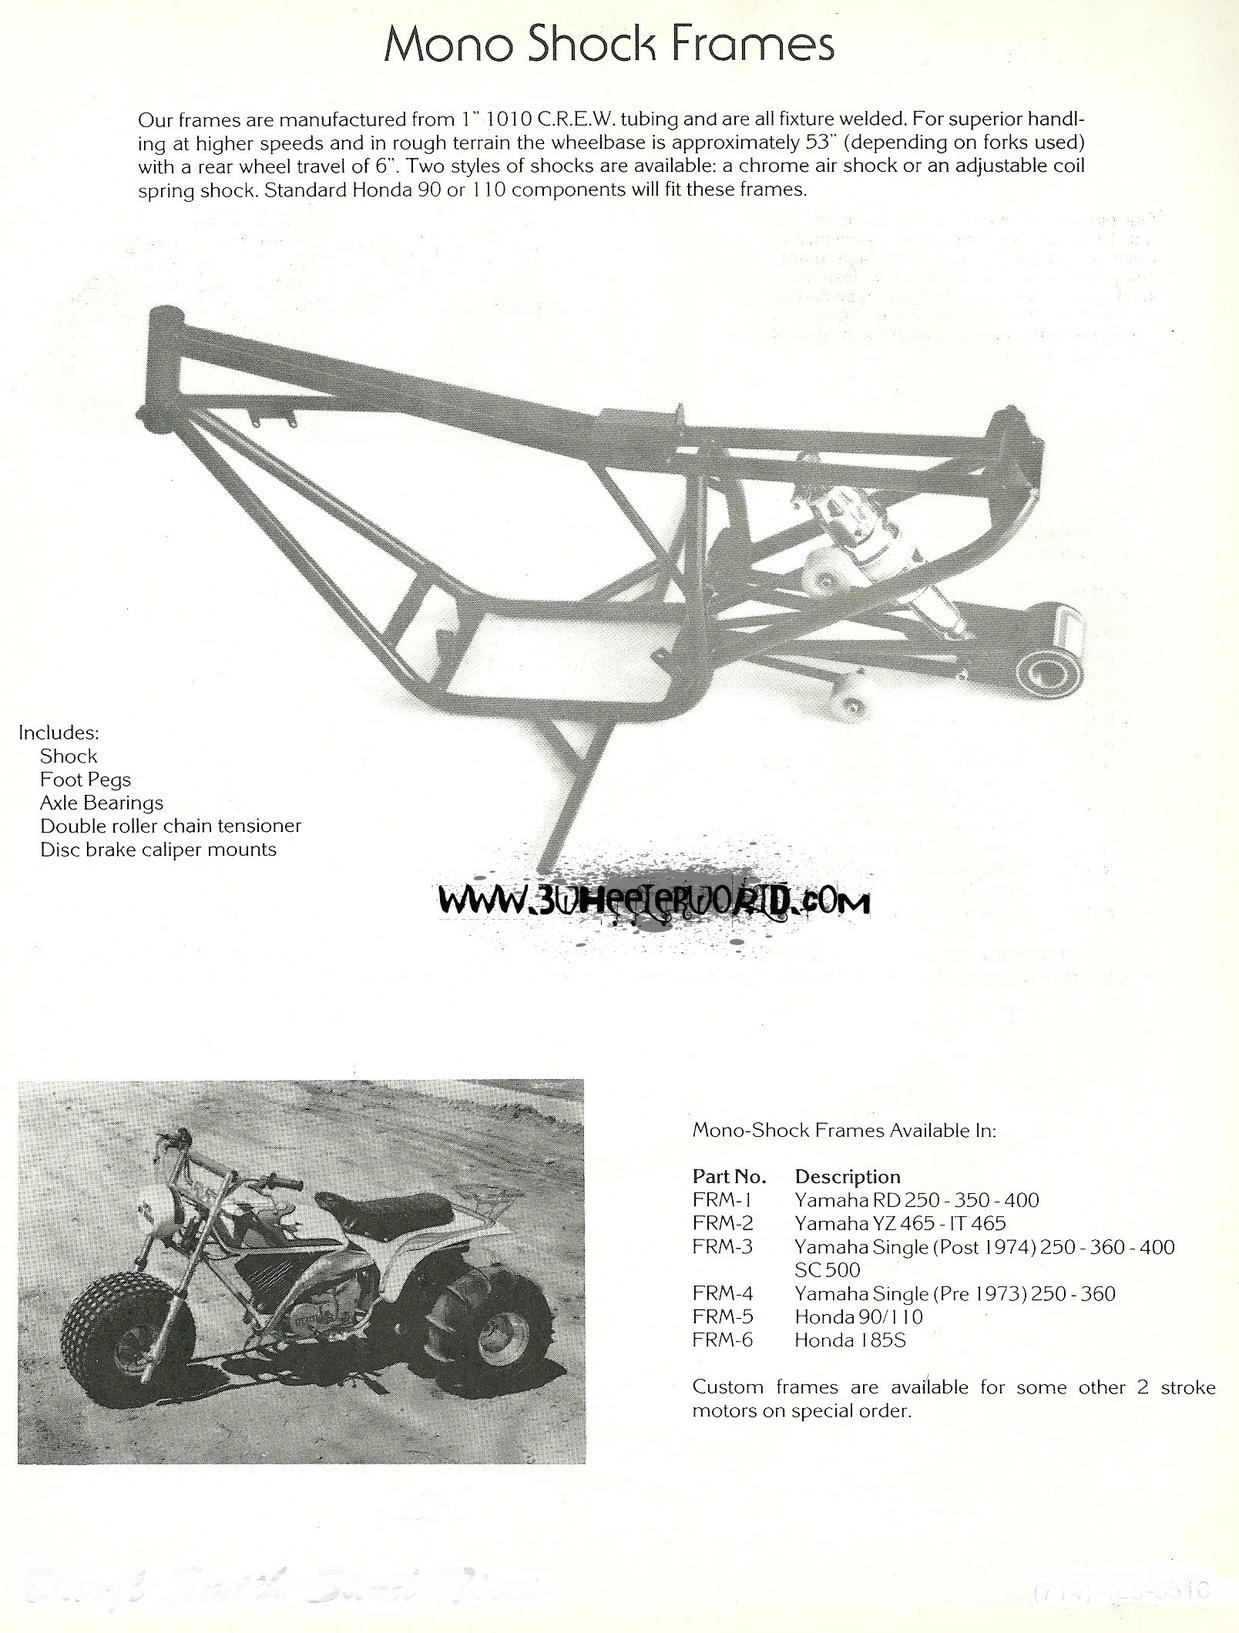 3wheeler world vintage high performance products brochures cool rd400 xr500 cr250 elsinore this would have been like the earliest version of a 250r probably ever conceived back in the mid 1970s falaconquin